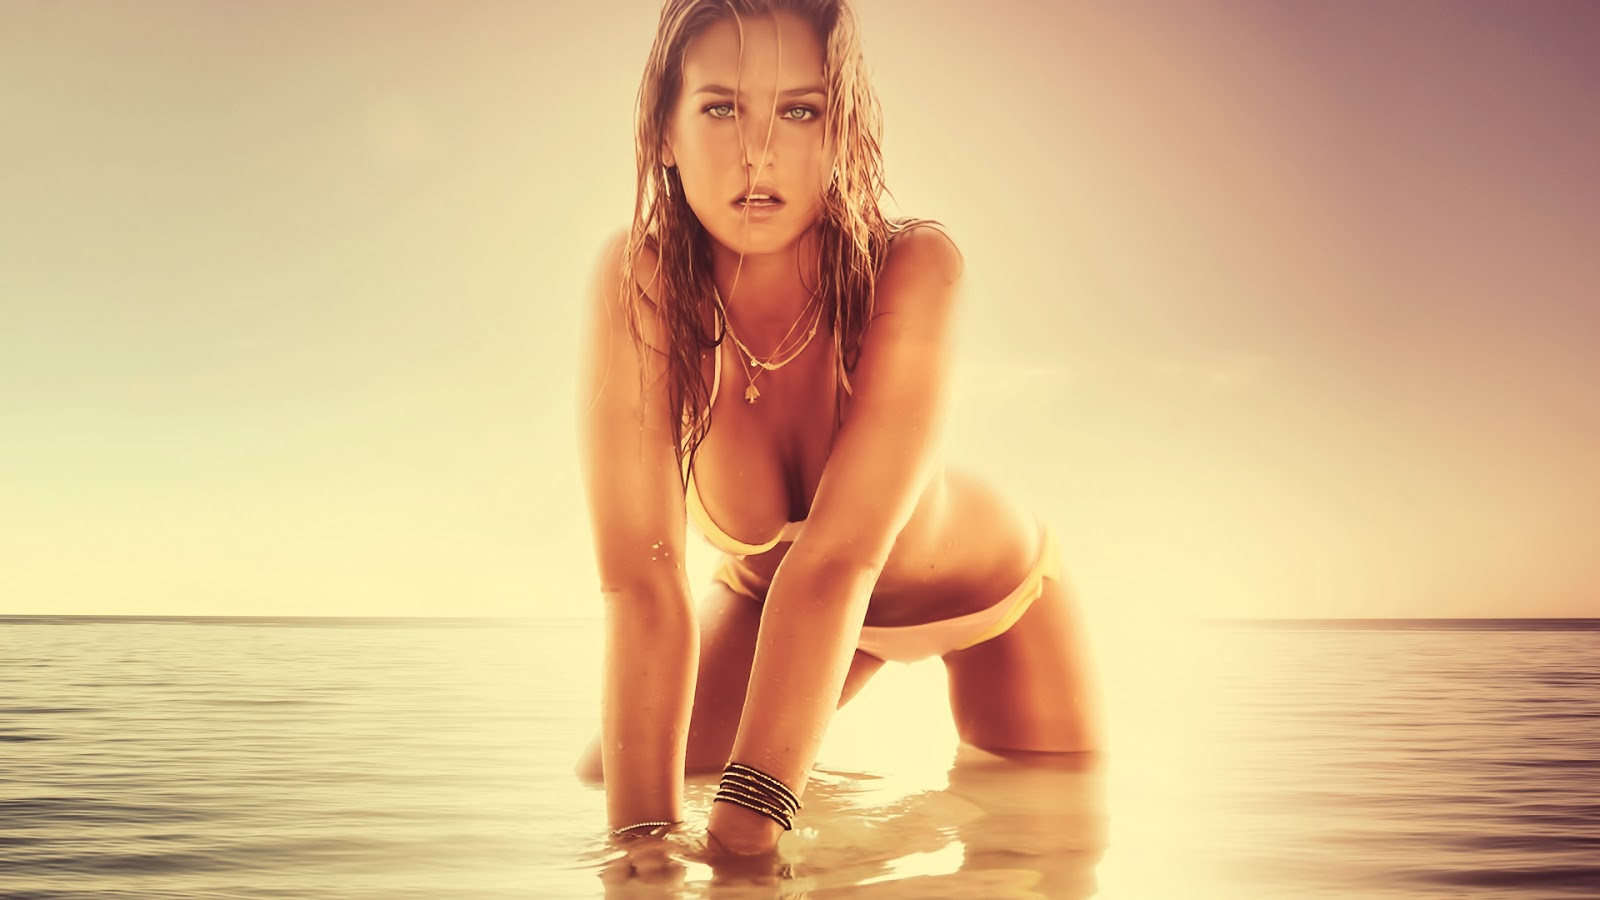 Bar Refaeli Hot Model Wallpapers 2013